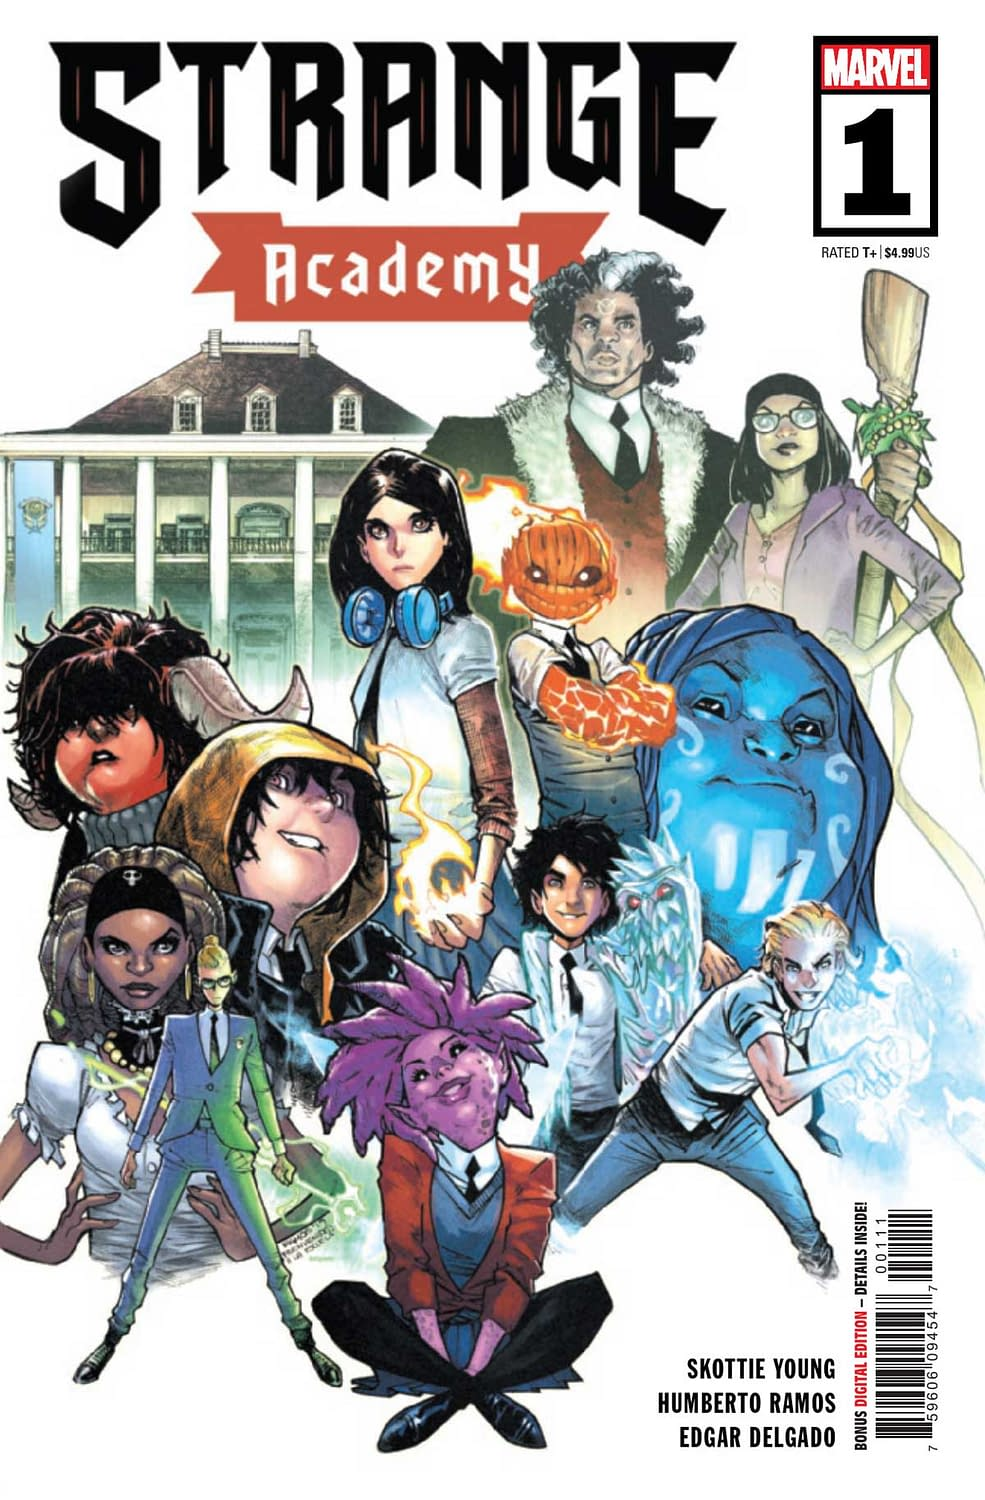 """REVIEW: Strange Academy #1 -- """"Uniting Scions Of Both 'Good' And 'Bad' Ideologies Under One Educational Roof"""""""